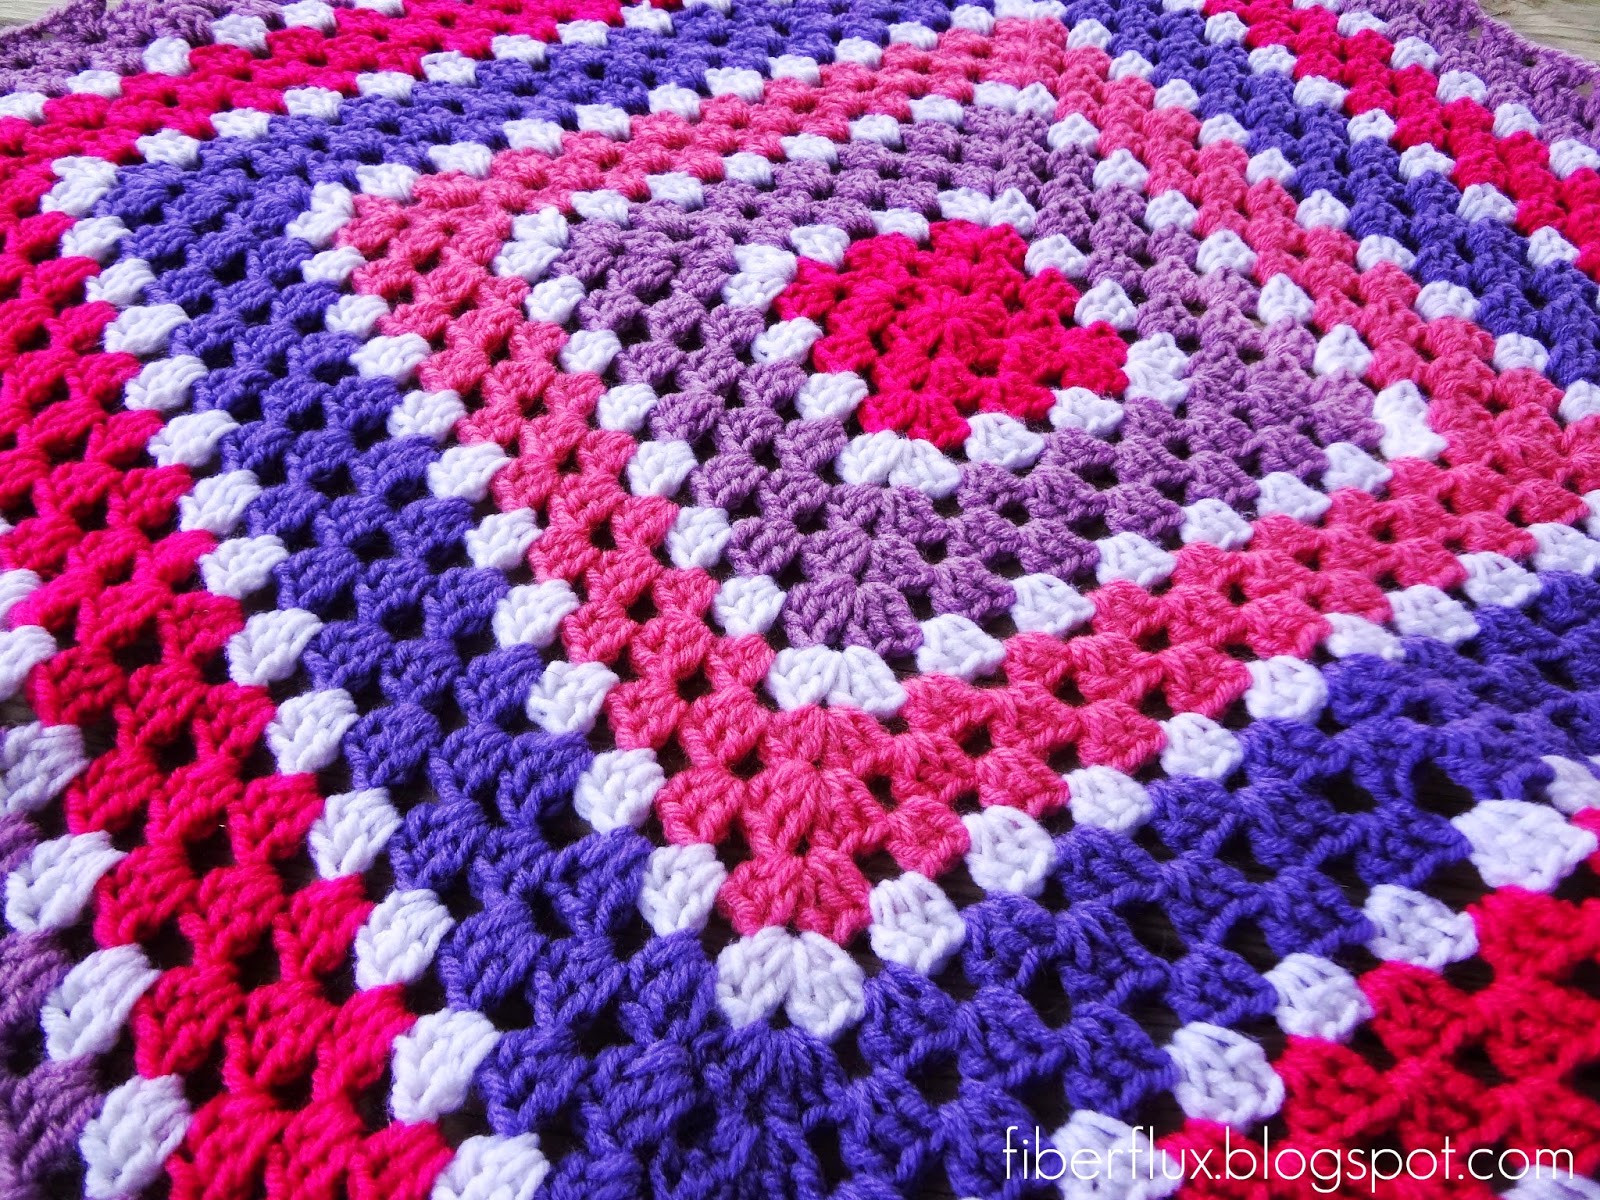 Free Crochet Blanket Patterns Awesome Fiber Flux Free Crochet Pattern Berry Season Blanket Of Superb 44 Models Free Crochet Blanket Patterns